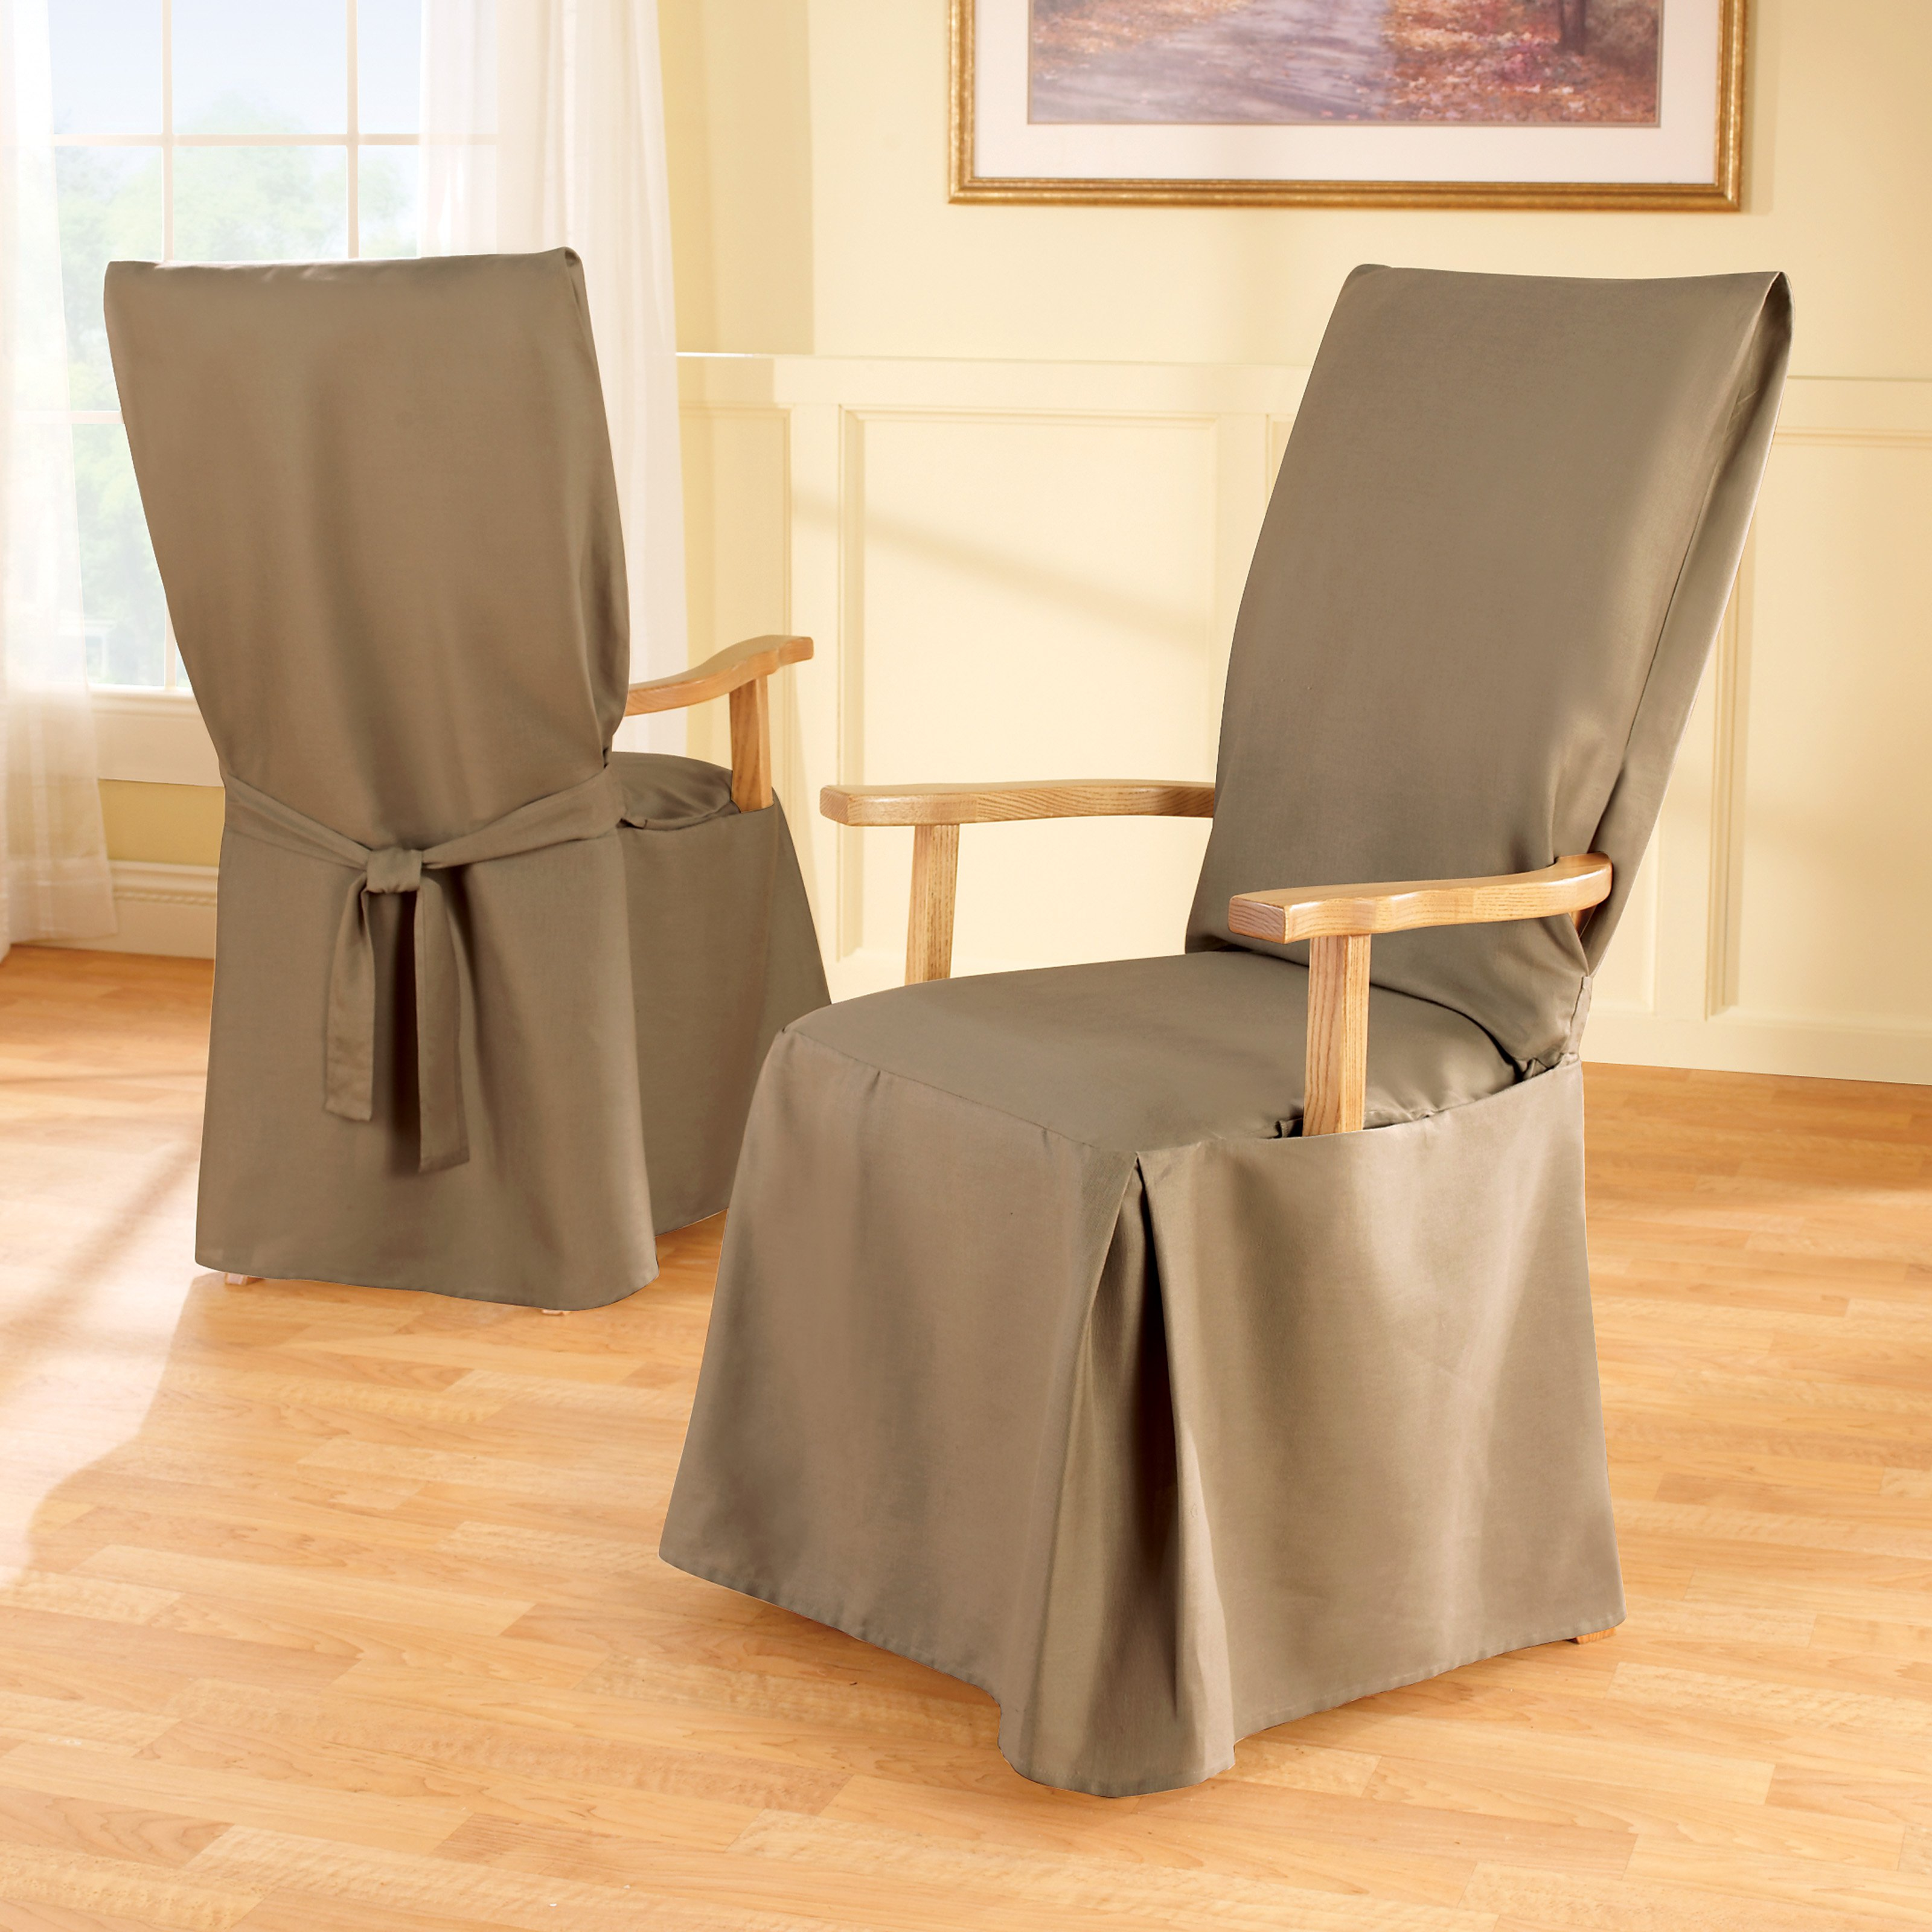 Dining Chair : Denim Dining Chair Slipcovers Ikea Chair Covers Roll Intended For Best And Newest Covers For Sofas And Chairs (View 13 of 20)